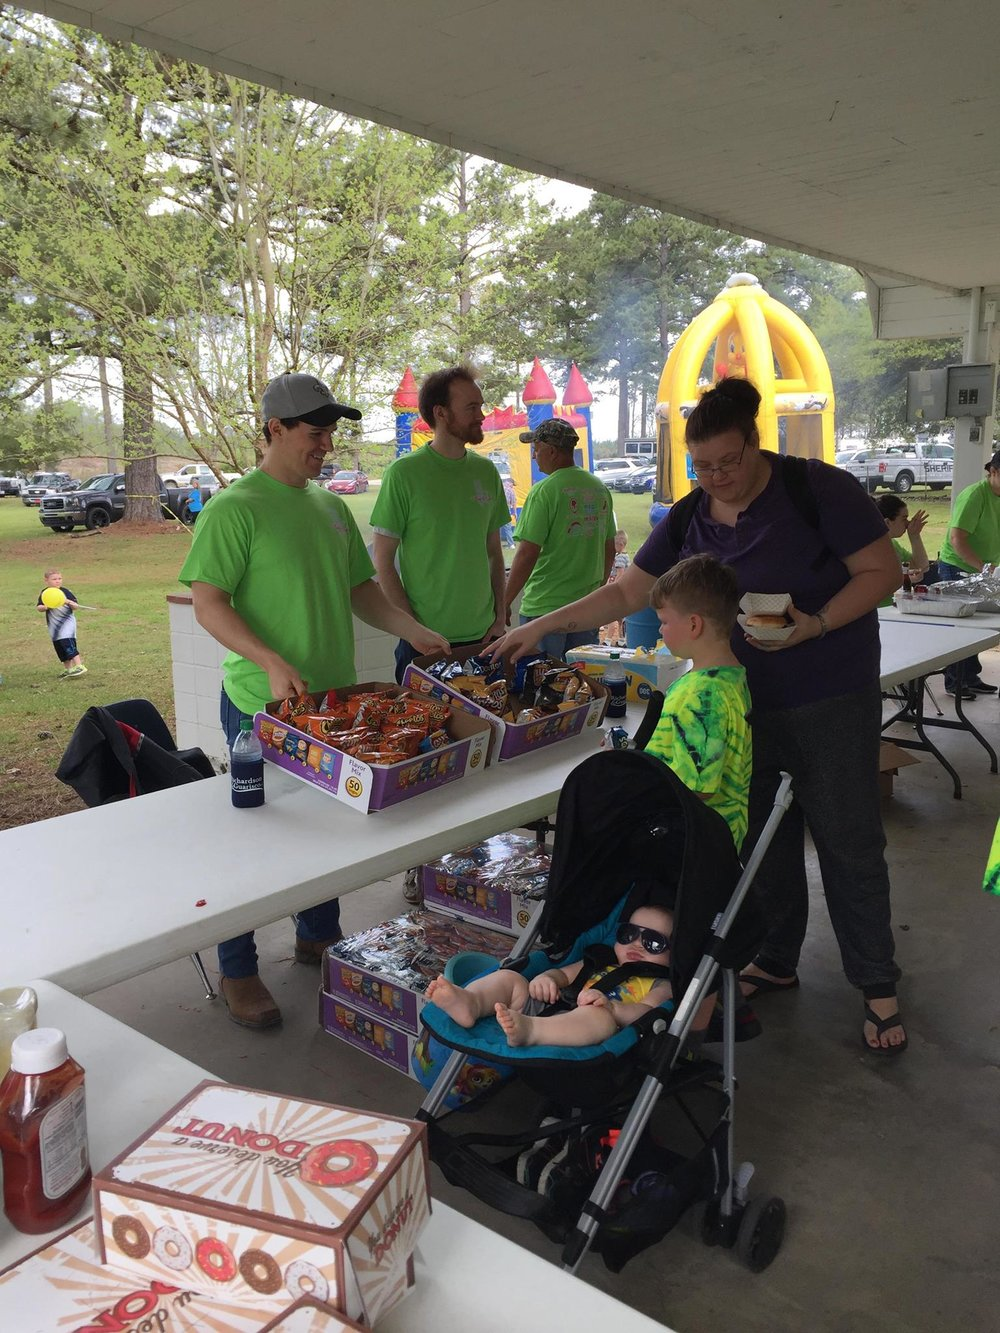 John, Nick, and Rachel volunteered at the annual Easter Egg Hunt Festival in the village of Elizabeth. The three attorneys served chips and cupcakes during a fun-filled day!